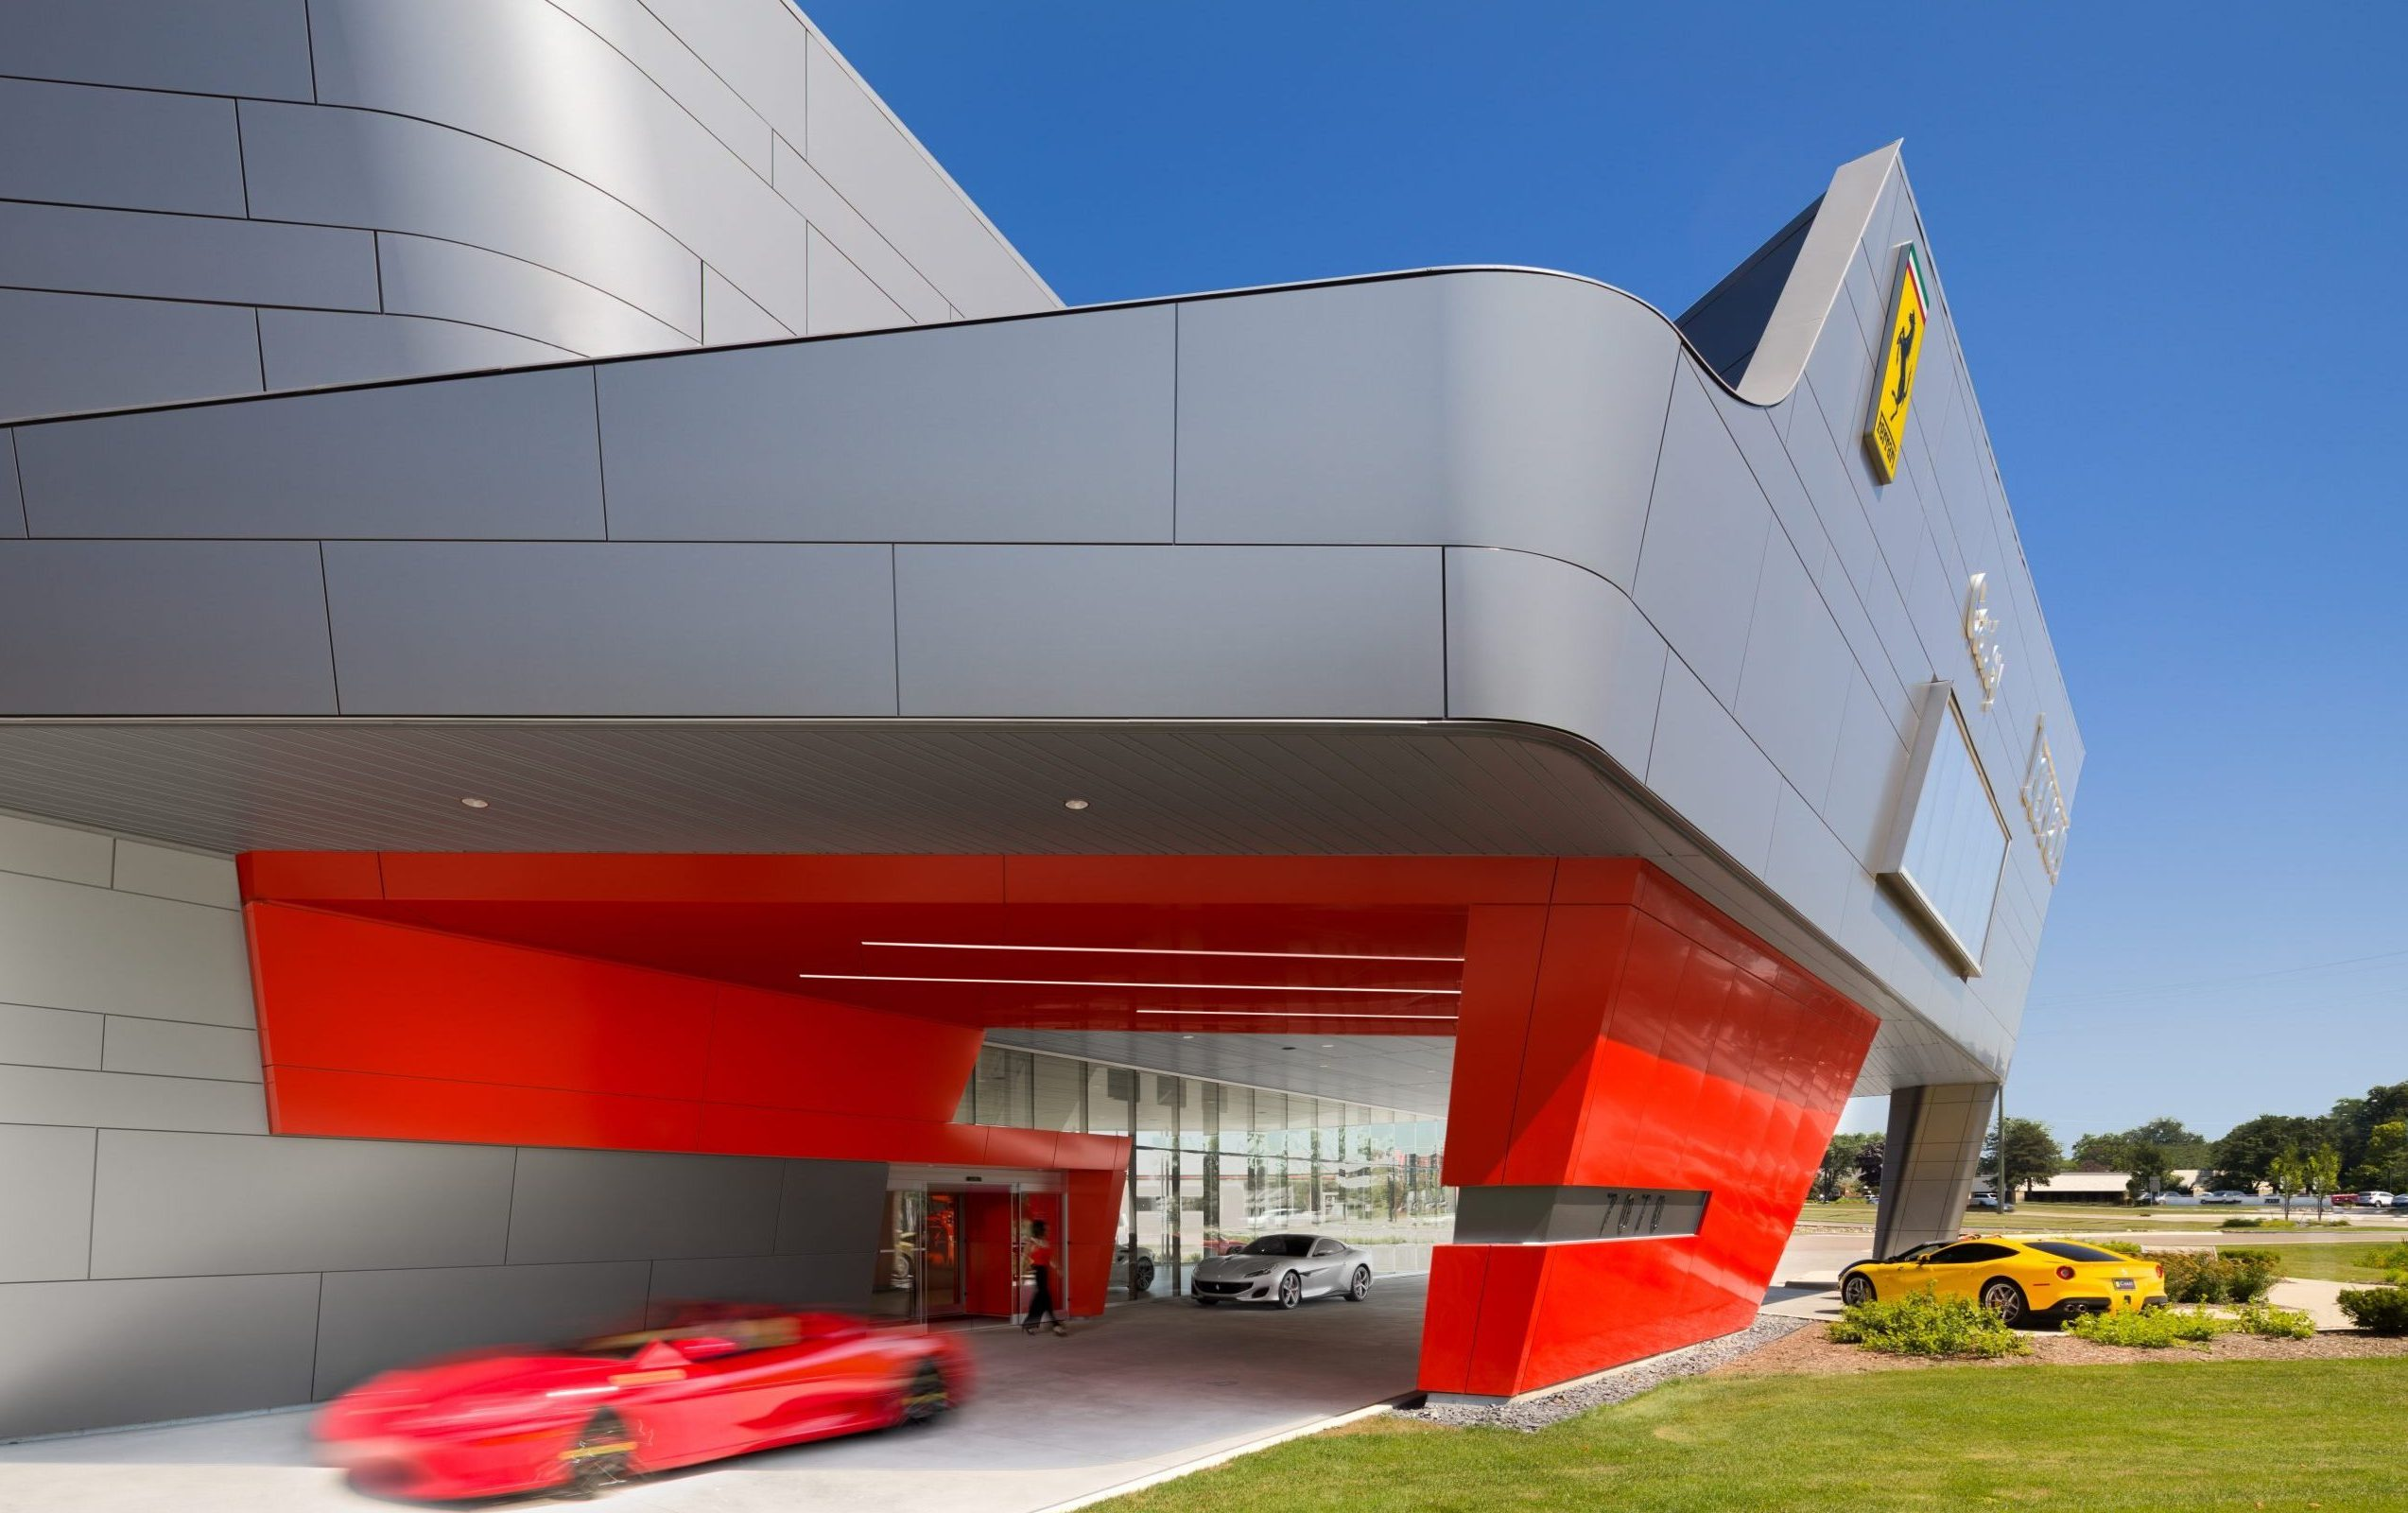 Detail of metal panel facade and underpass at Cauley Ferrari of Detroit Dealership and Showroom Project in Michigan Architecture Interiors Computational Design